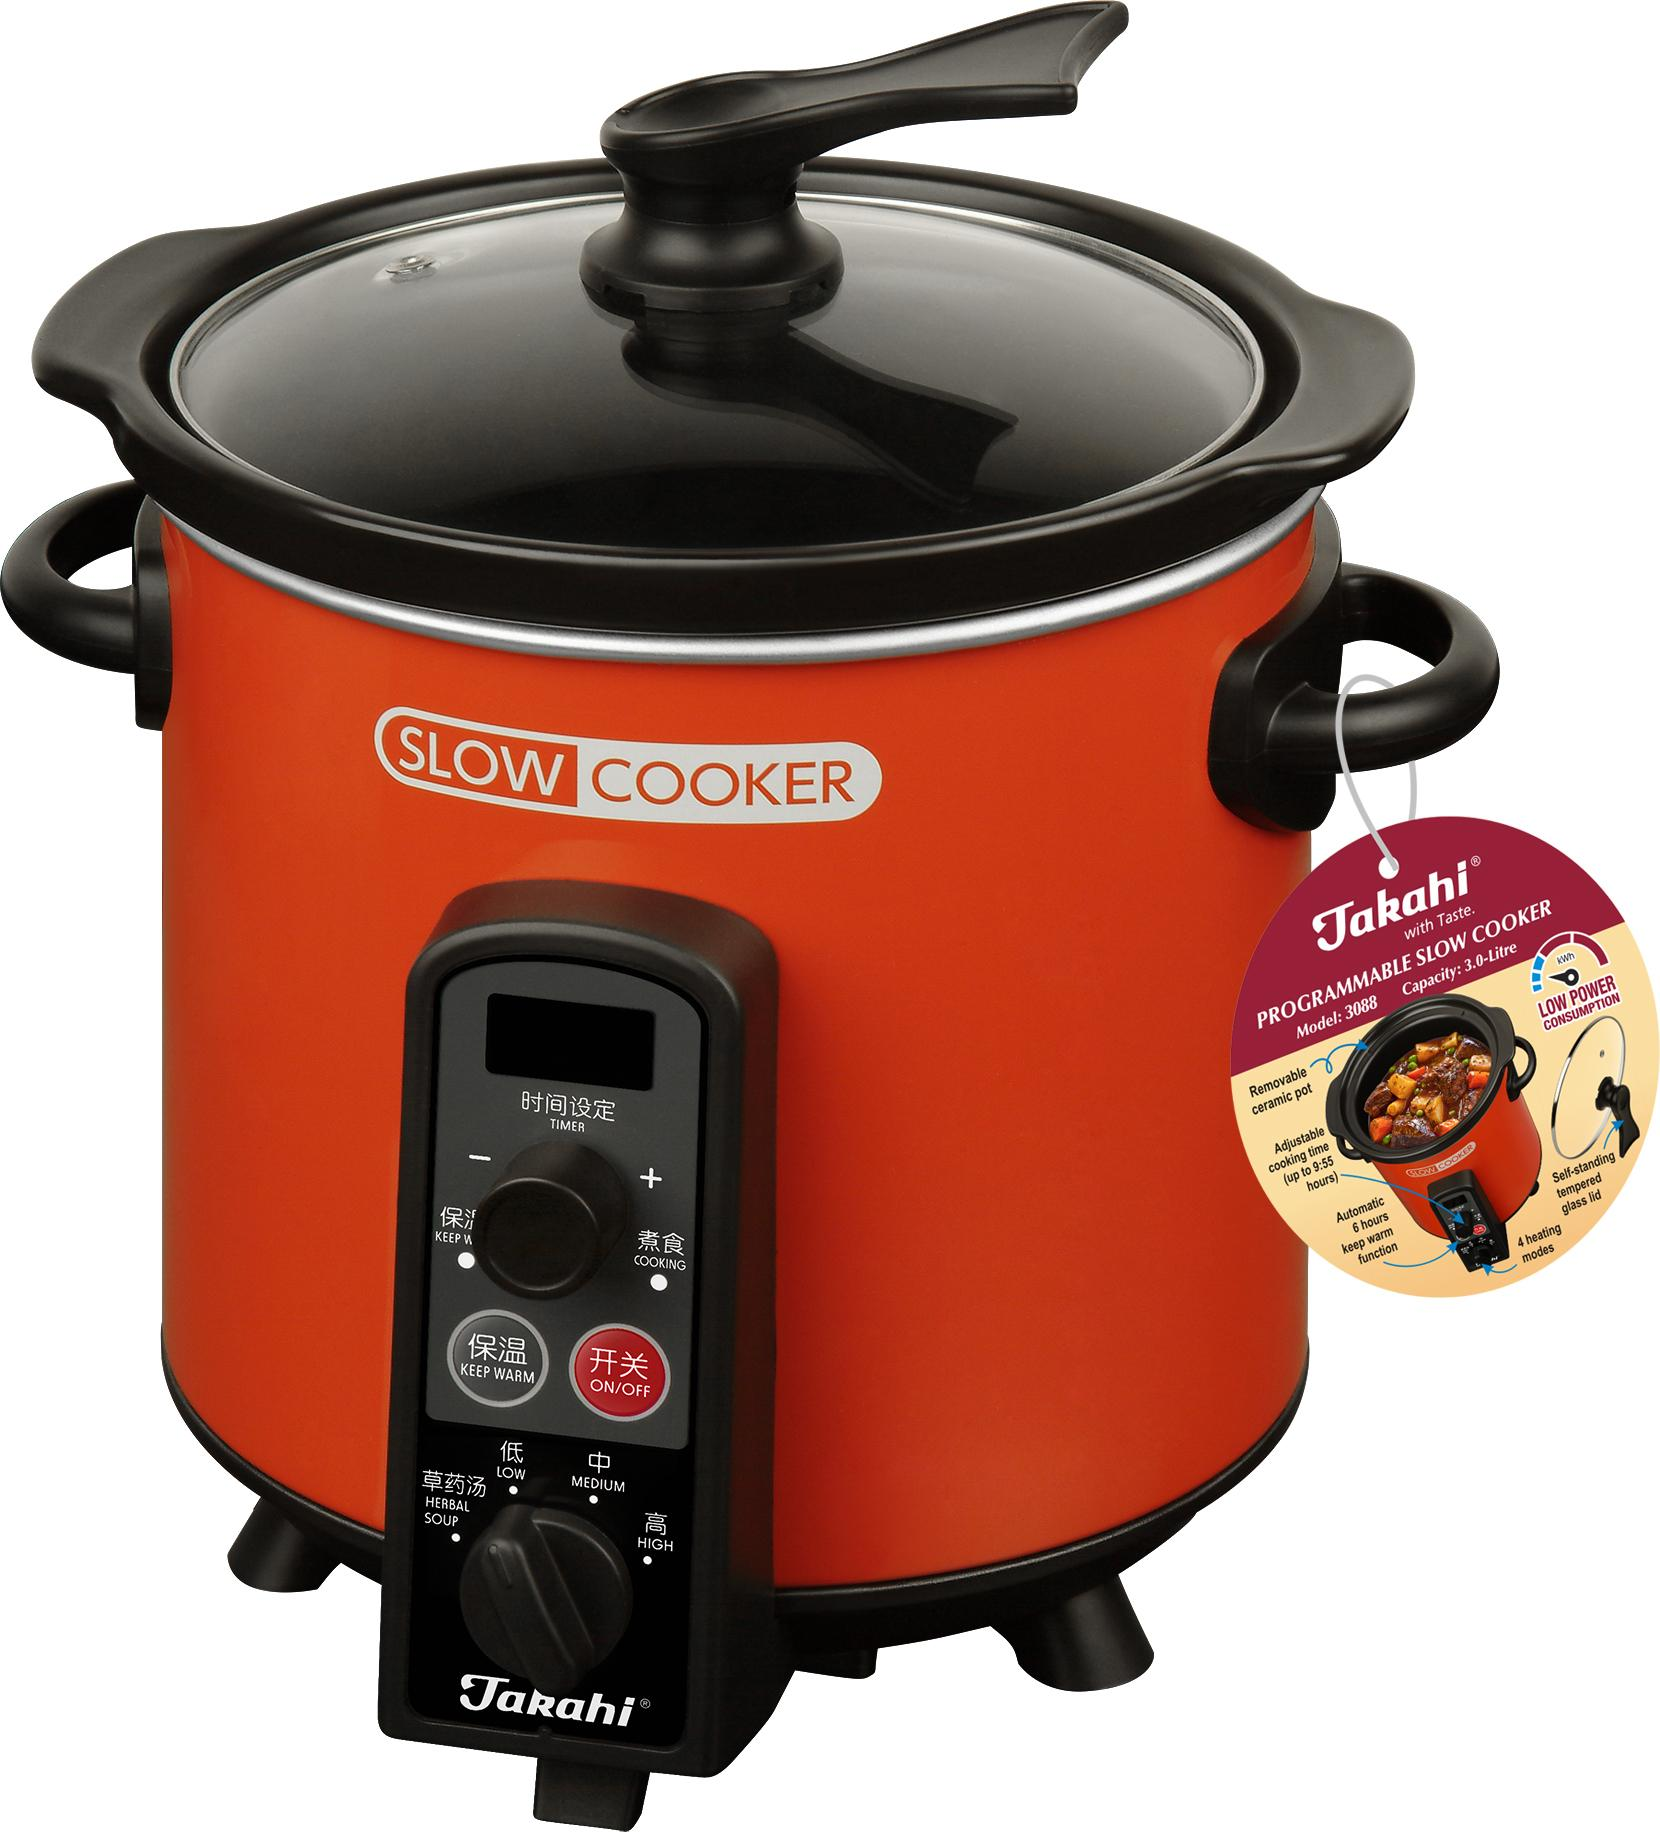 Takahi 3.0L Programmable Slow Cooker 3088